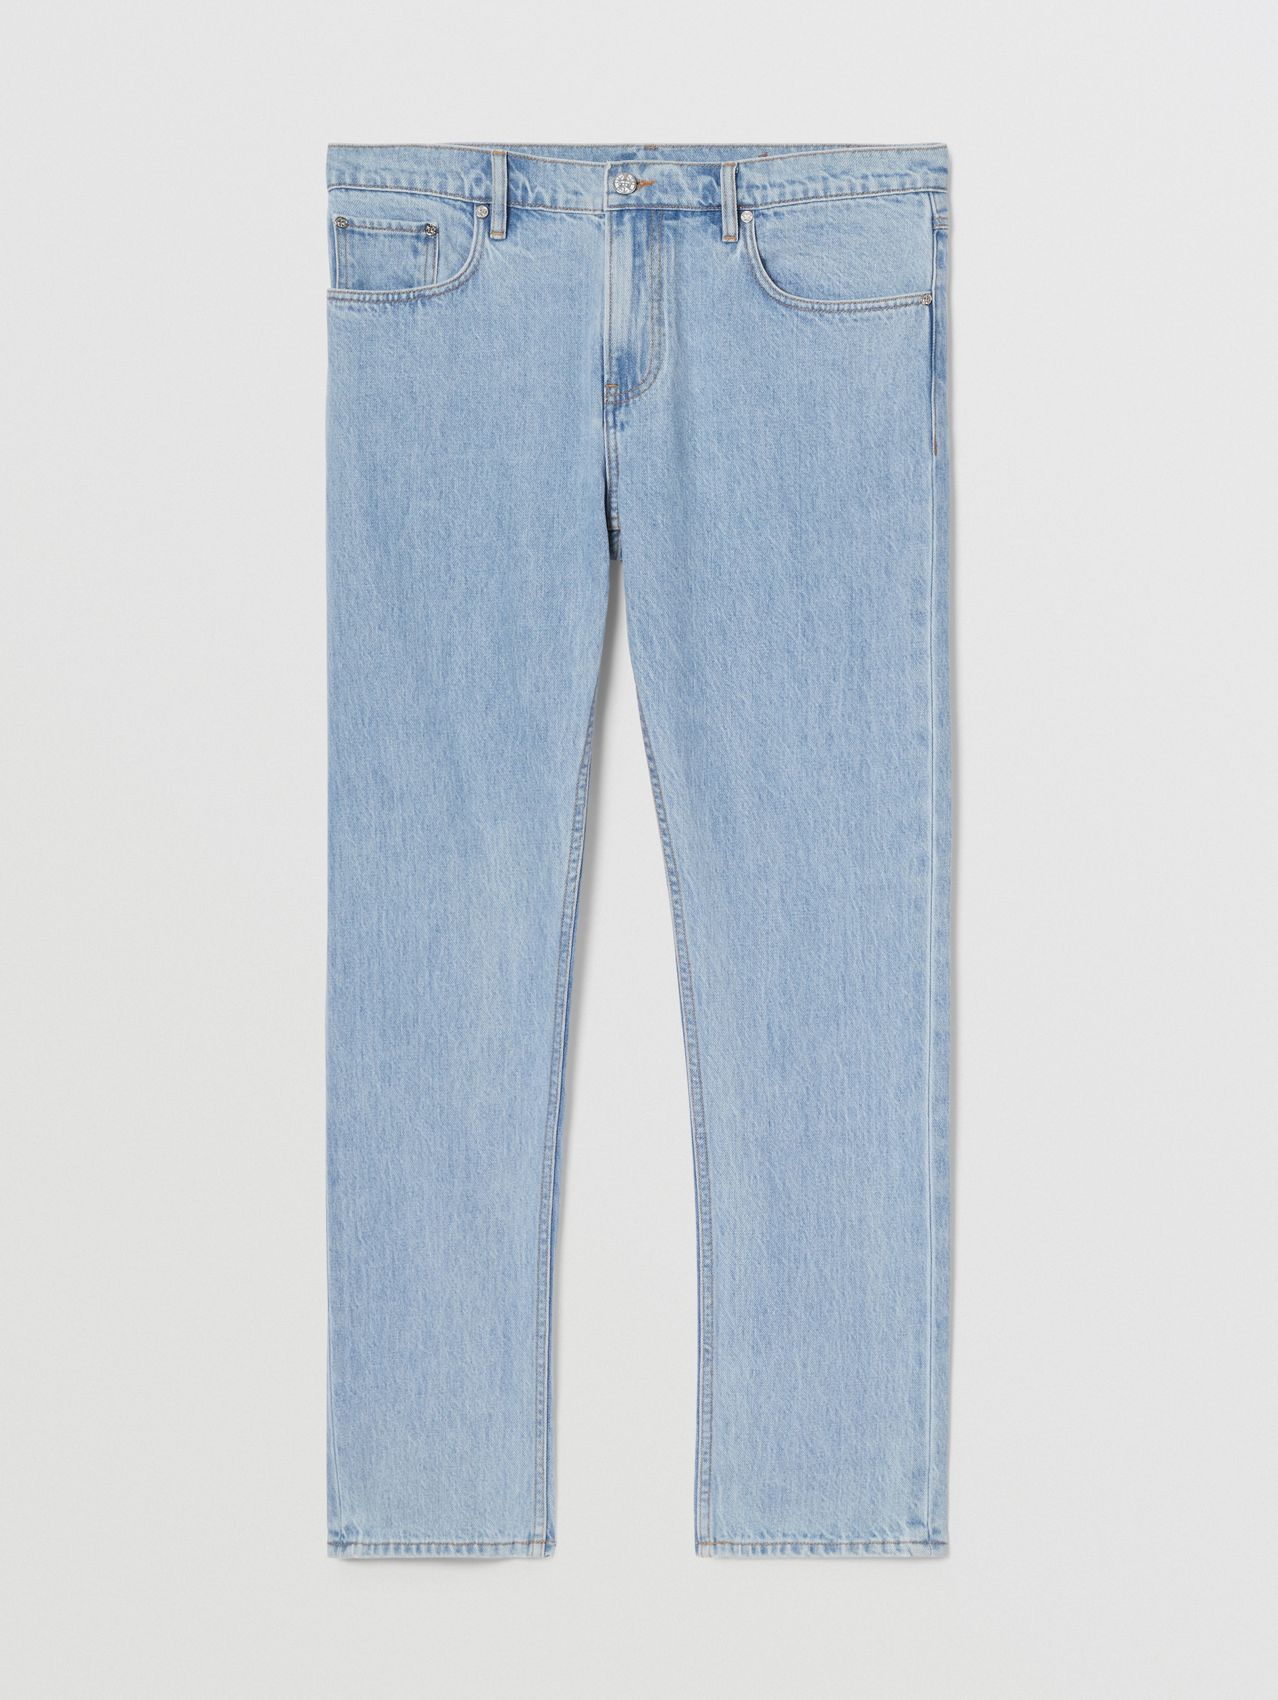 Straight Fit Washed Denim Jeans in Pale Blue